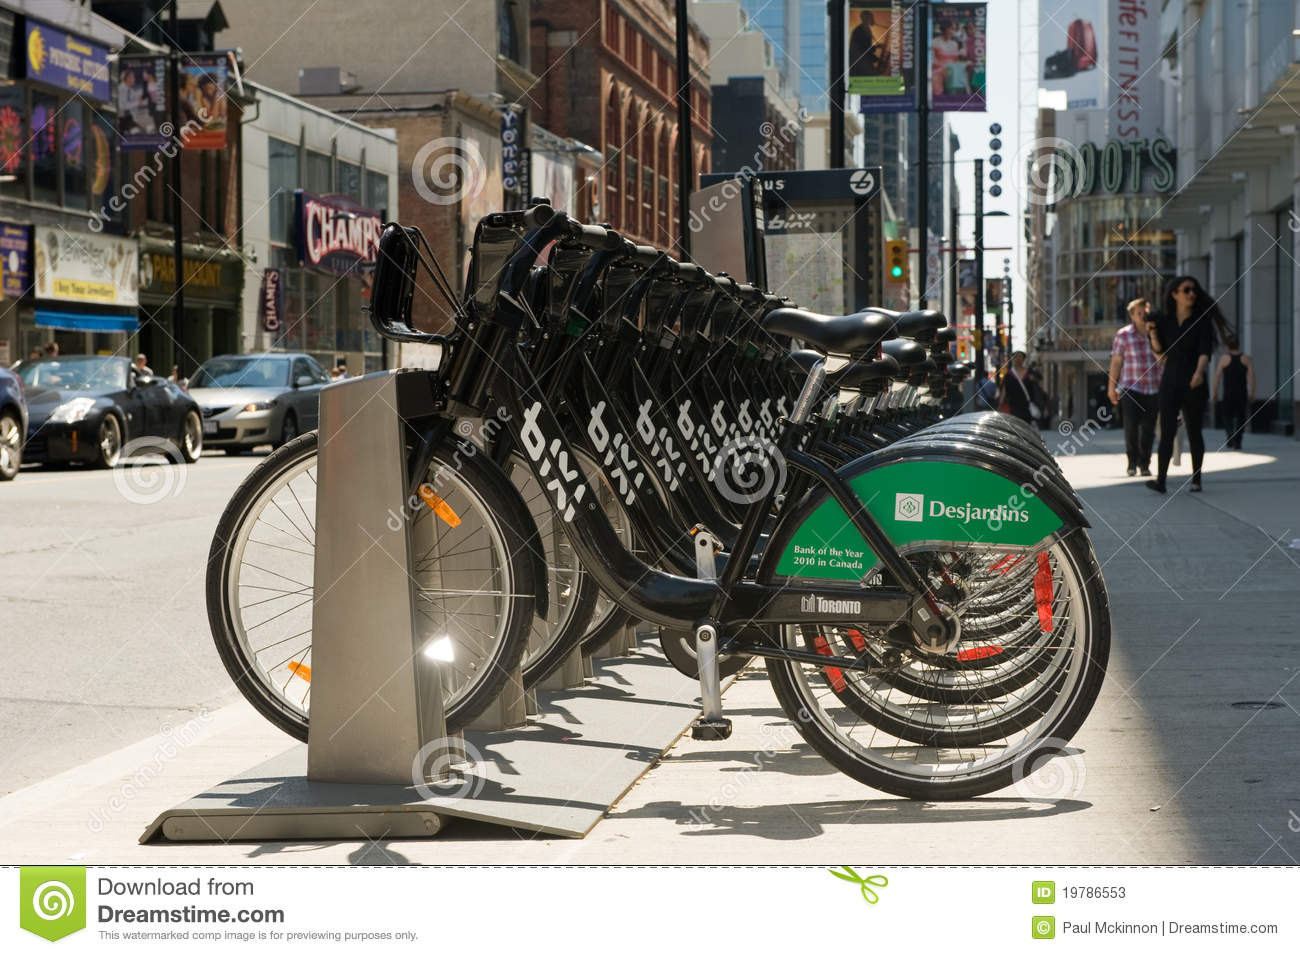 Bicycle sharing system bixi comes to